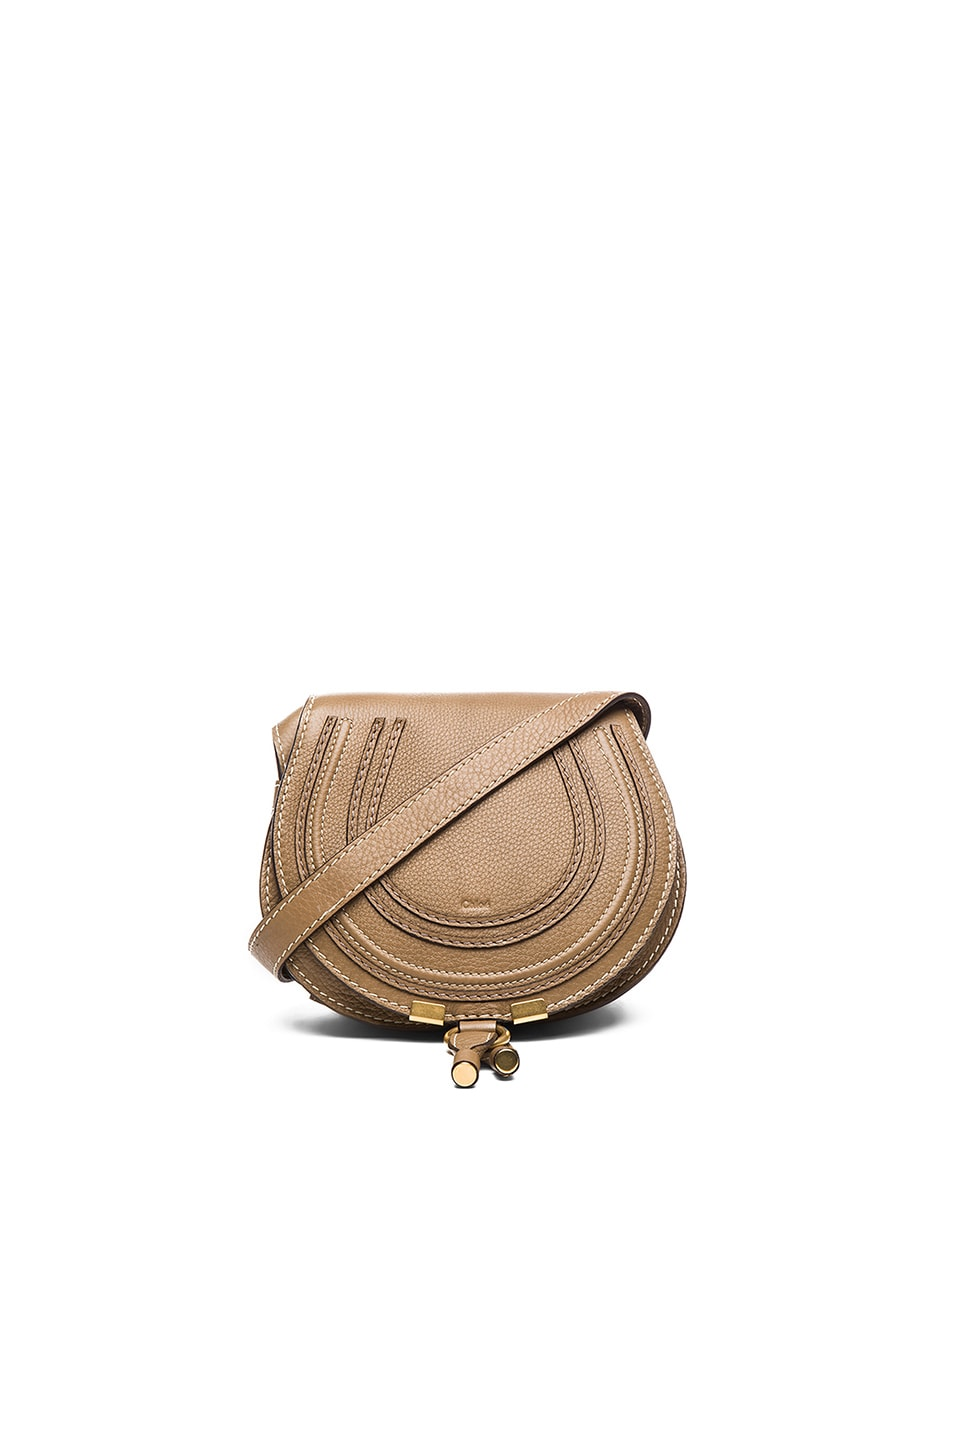 Image 1 of Chloe Small Marcie Grained Calfskin Saddle Bag in Nut